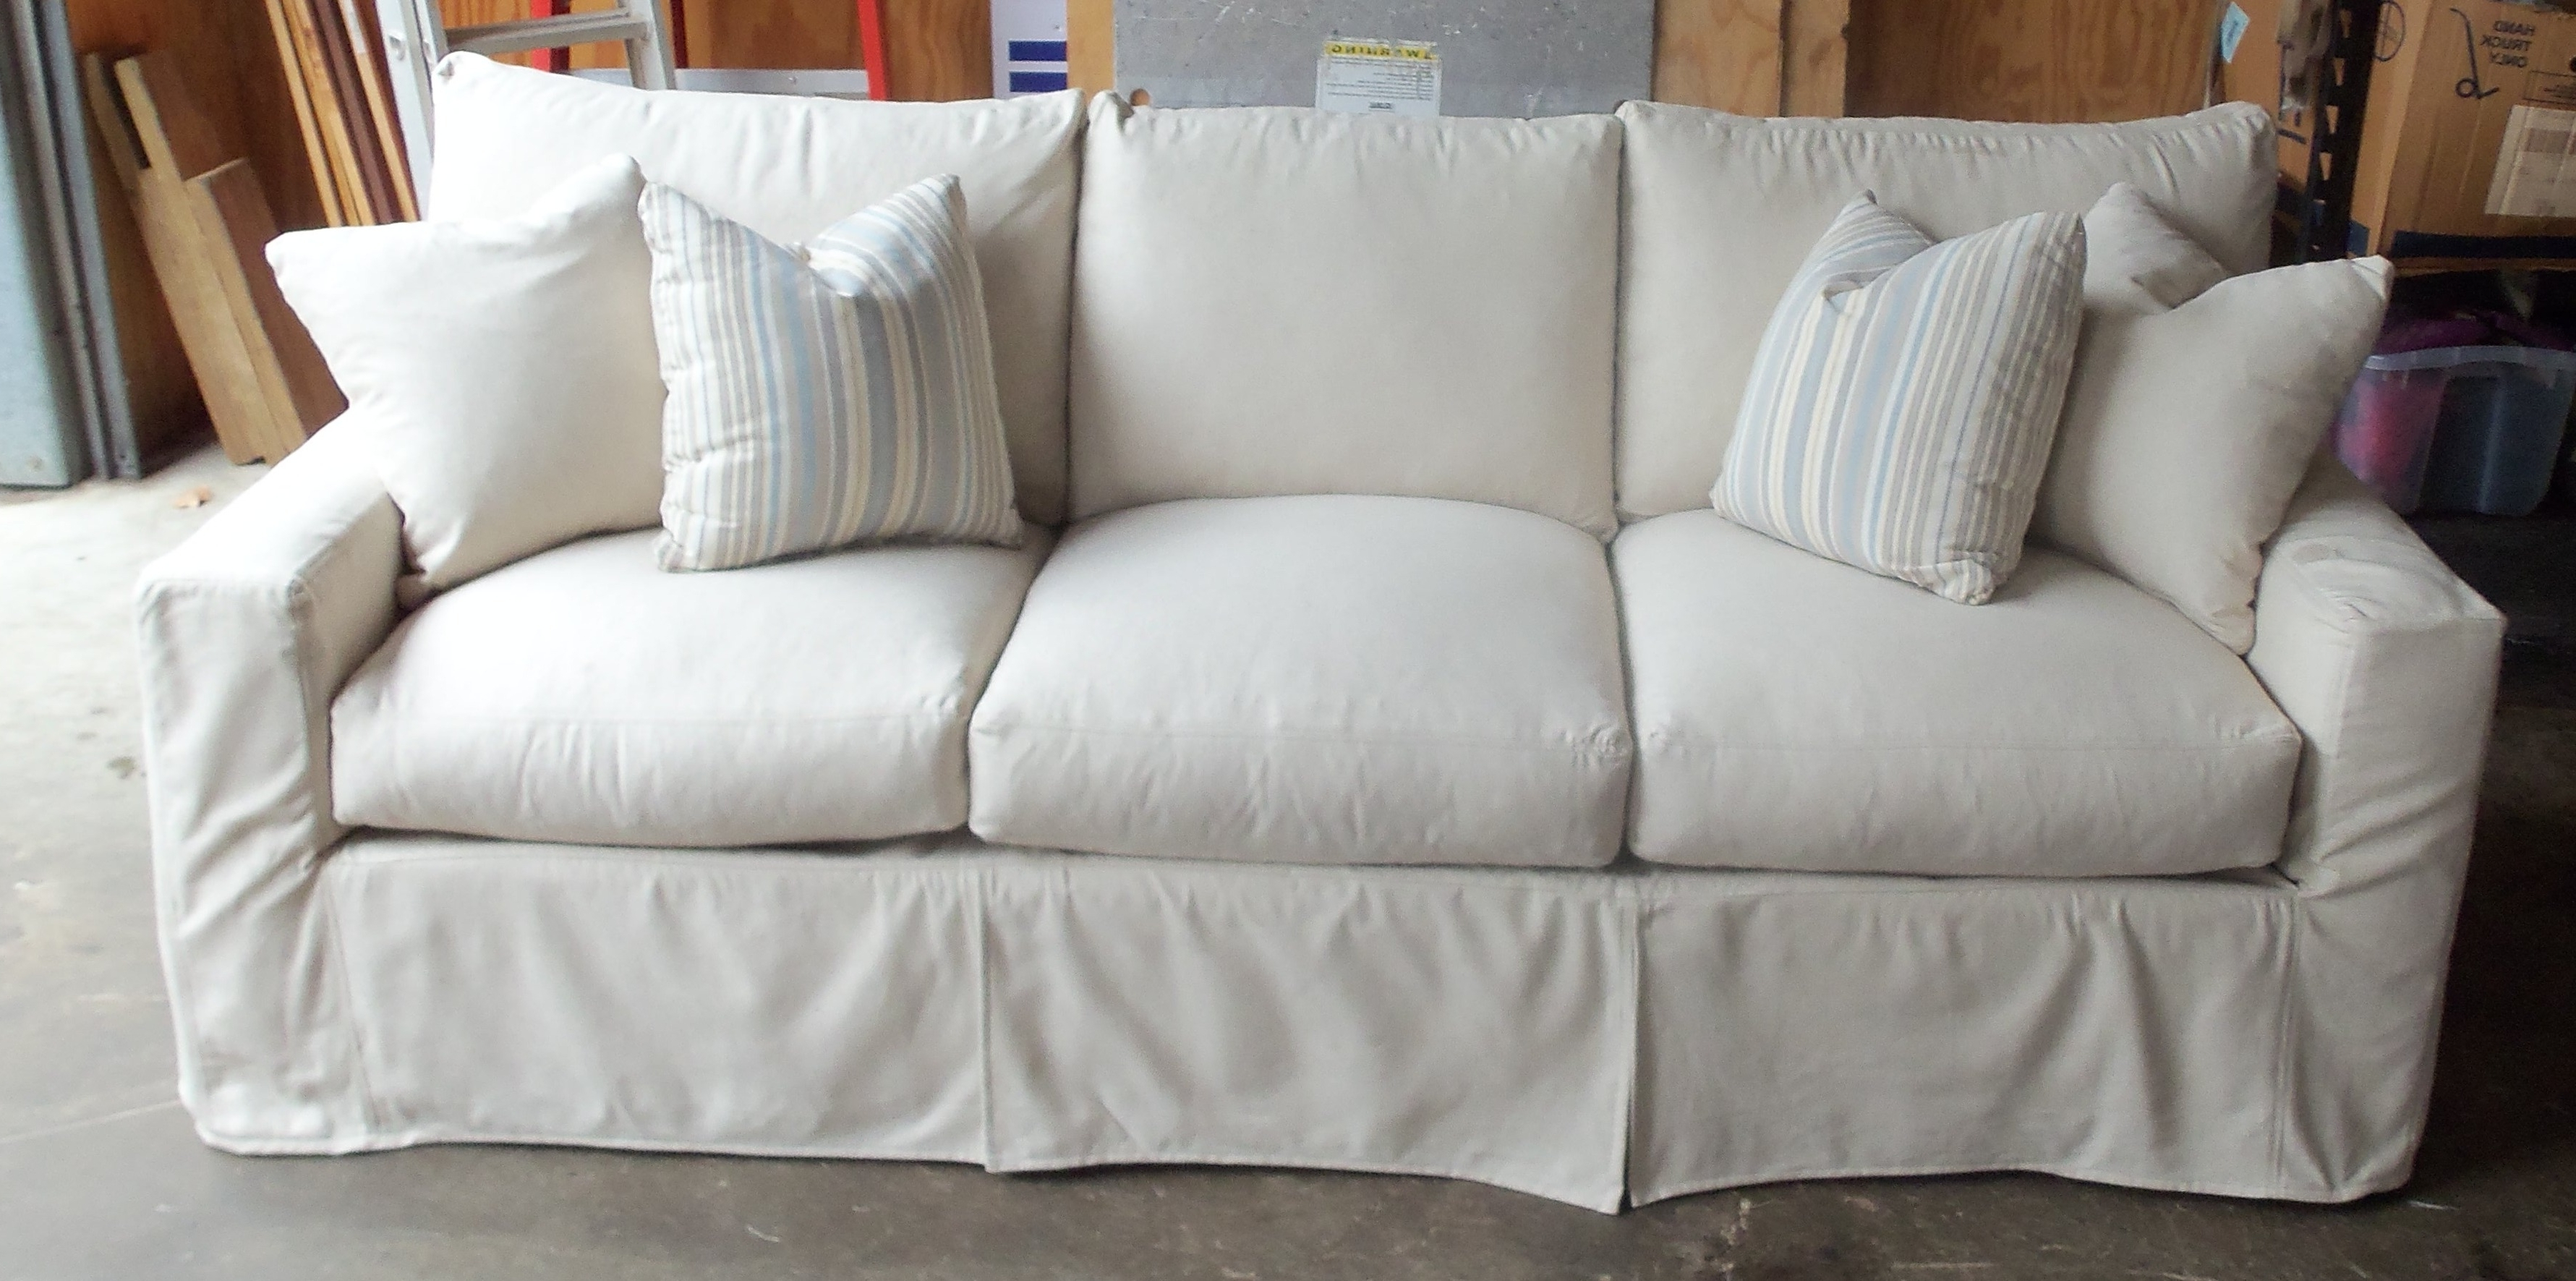 Most Recent Amazing Slipcovers For Sofa 92 For Your Sofa Table Ideas With In Slipcovers Sofas (View 9 of 20)